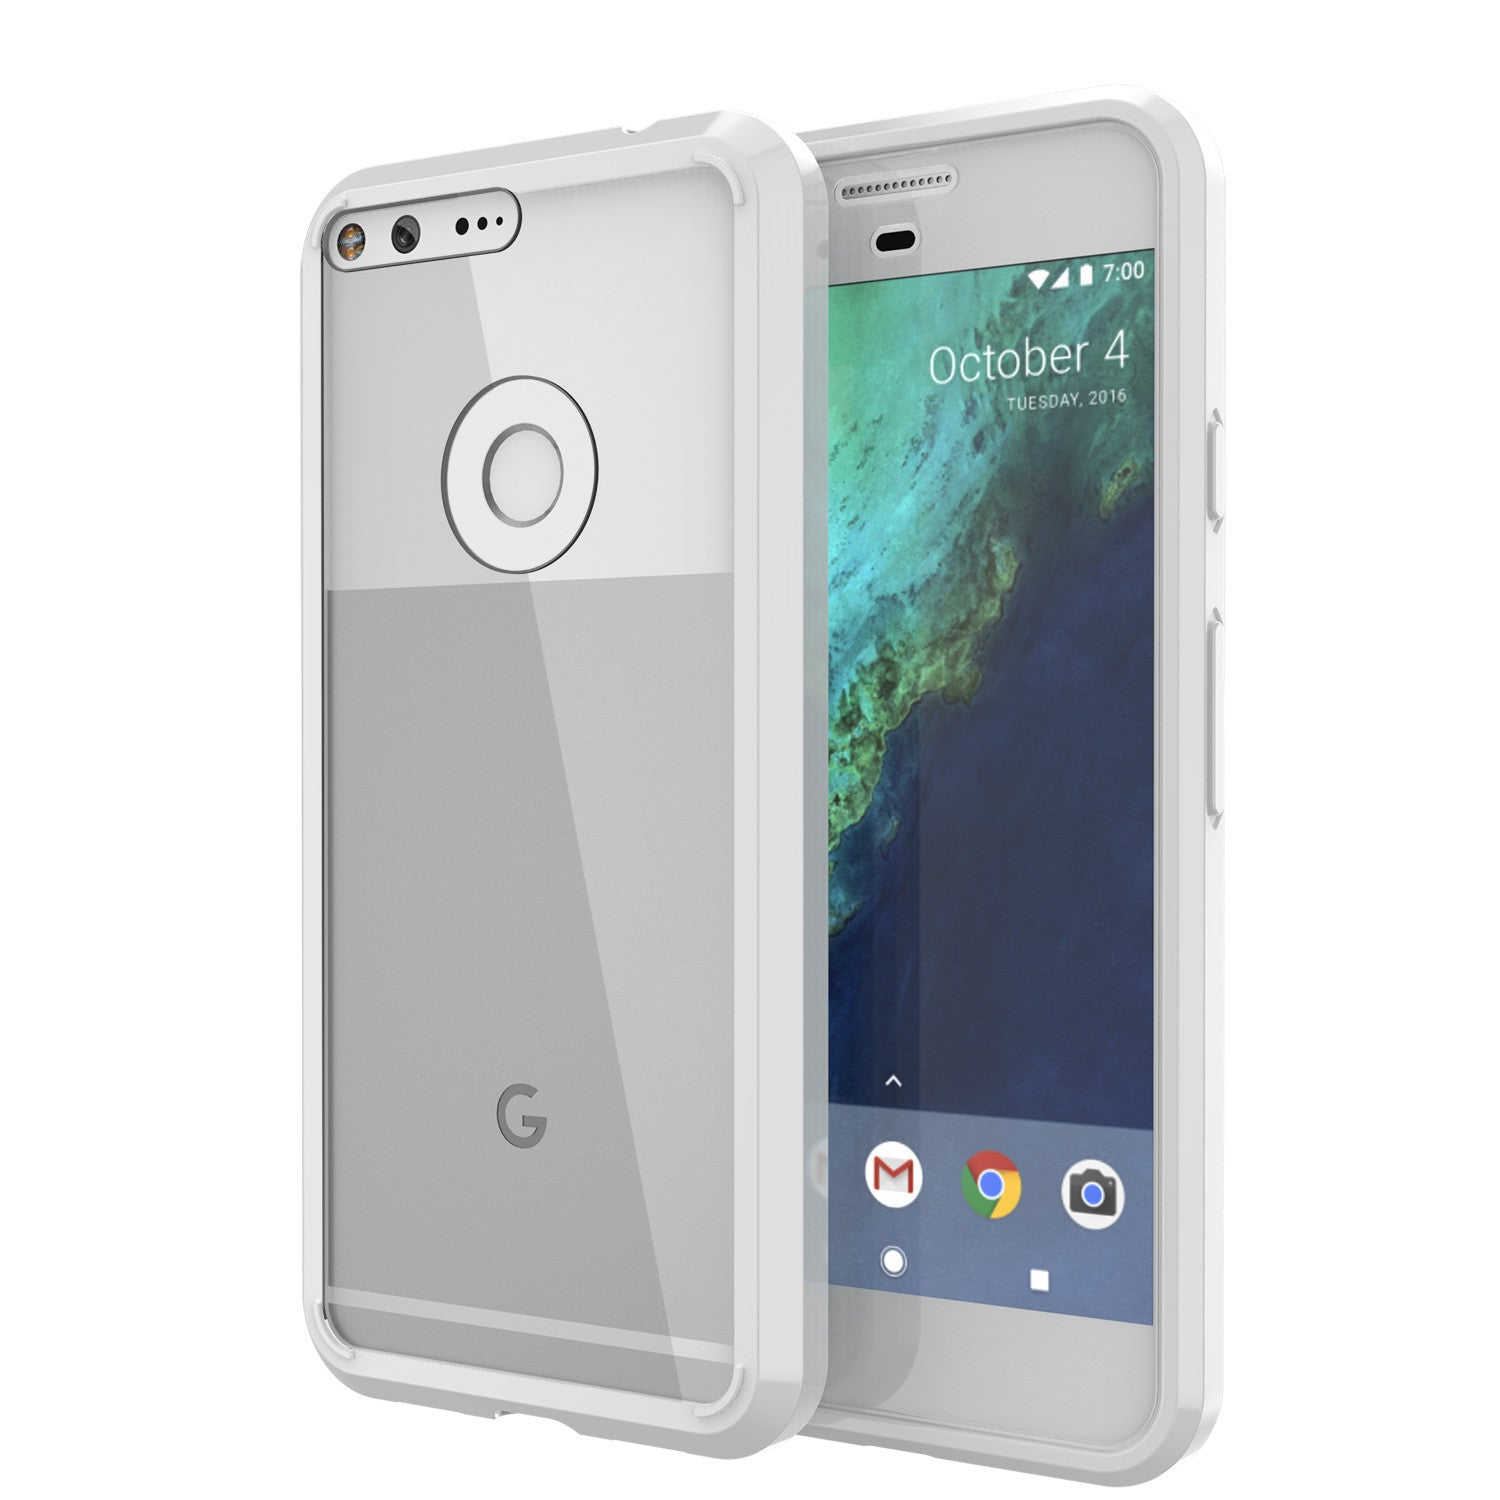 Google Pixel XL Case Punkcase® LUCID 2.0 White Series w/ PUNK SHIELD Glass Screen Protector | Ultra Fit